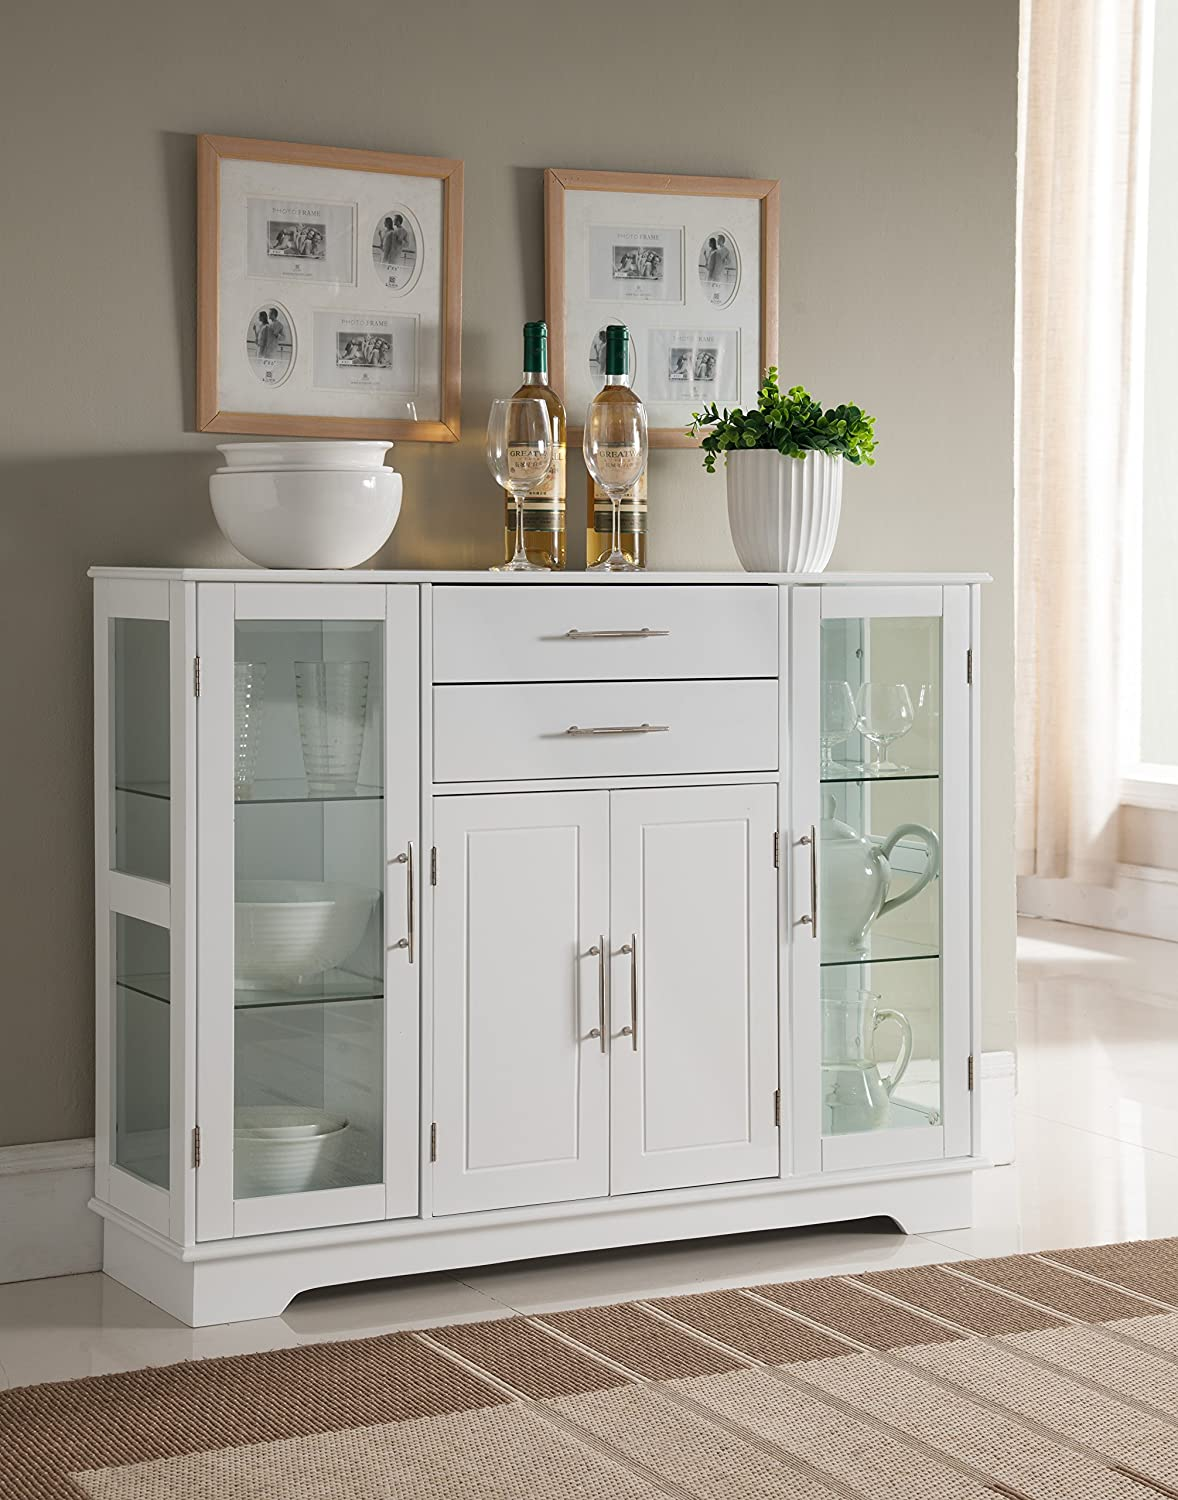 Amazon.com   Kings Brand Kitchen Storage Cabinet Buffet With Glass Doors,  White   Buffets U0026 Sideboards